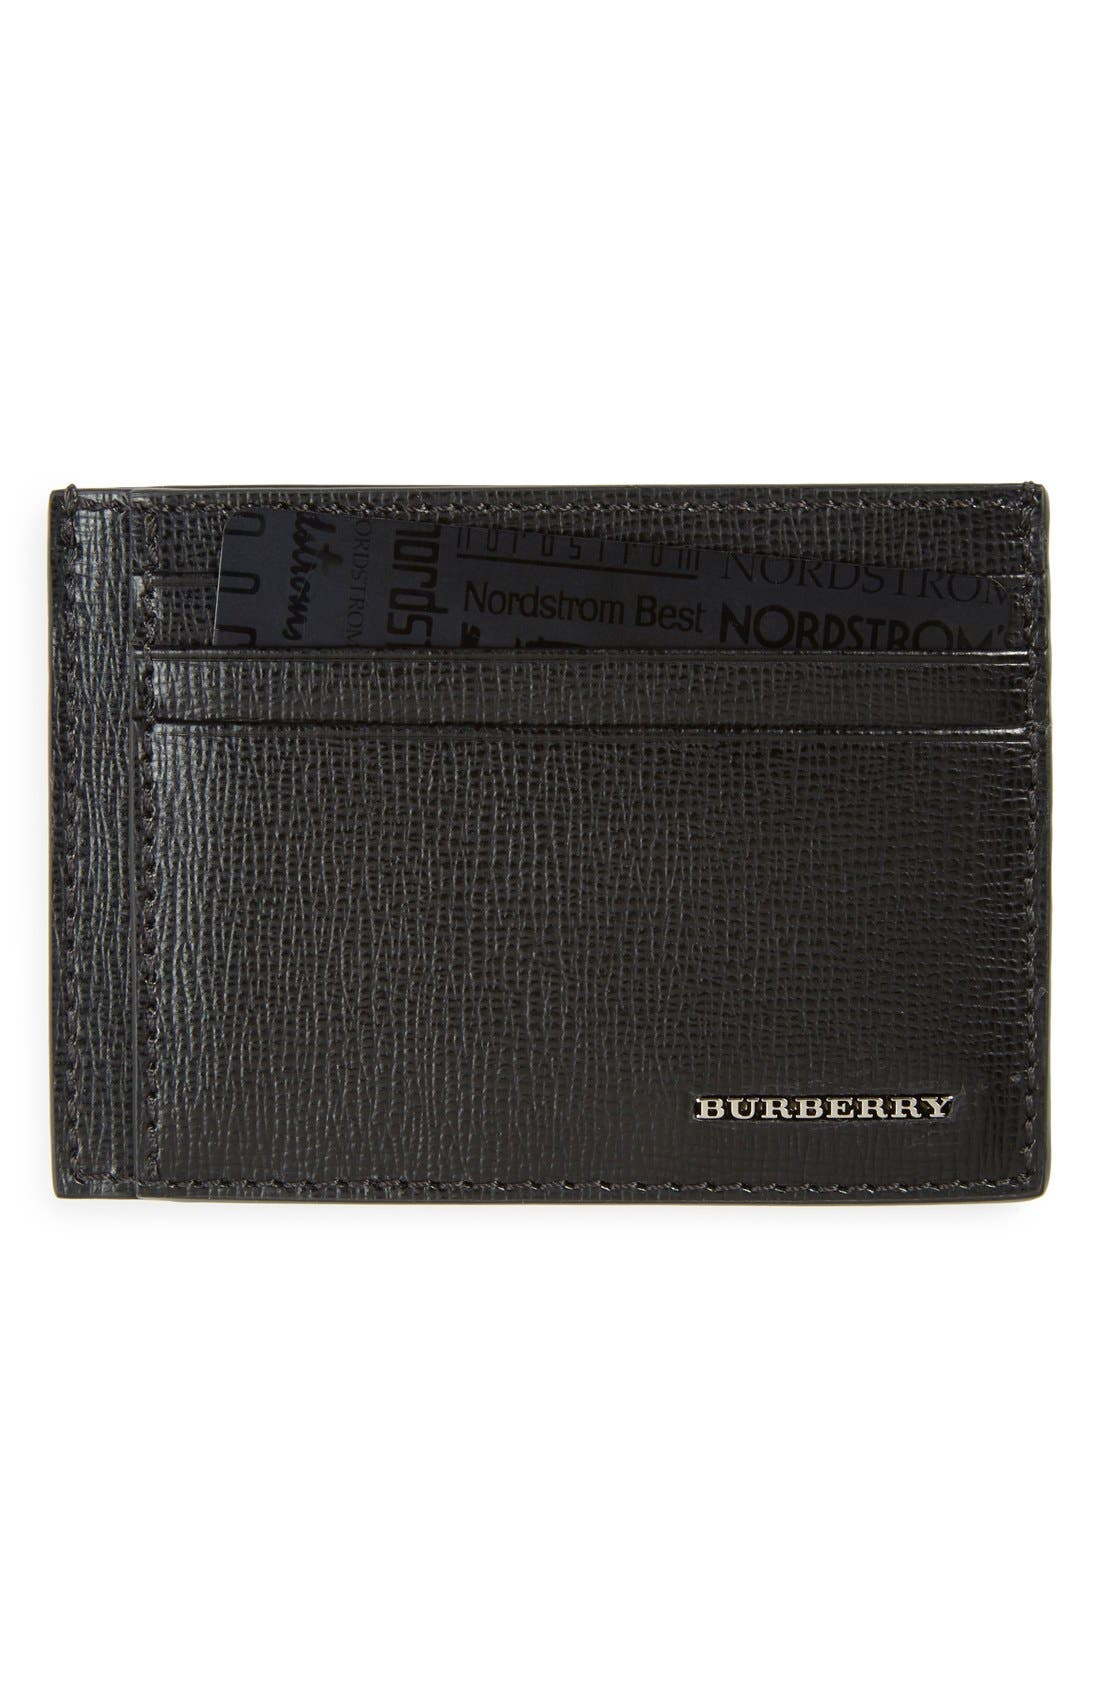 Burberry New London Leather Card Case